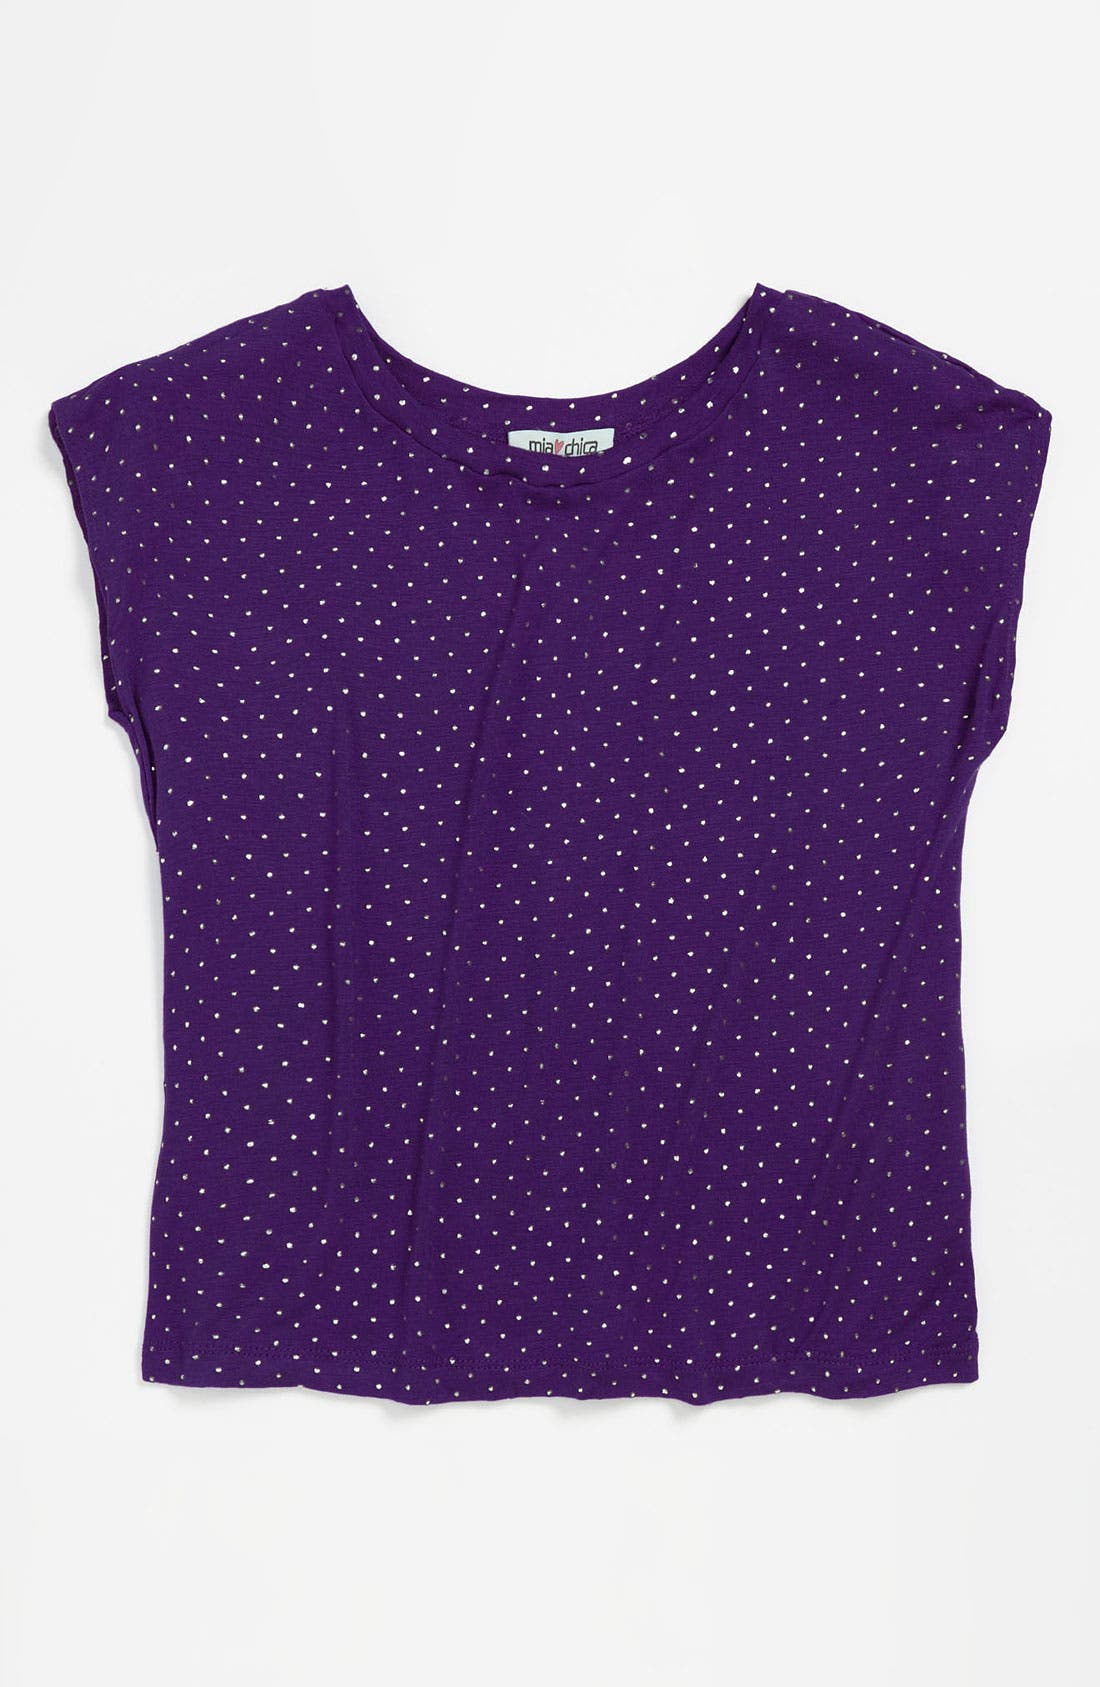 Alternate Image 1 Selected - Mia Chica Studded Top (Little Girls & Big Girls)